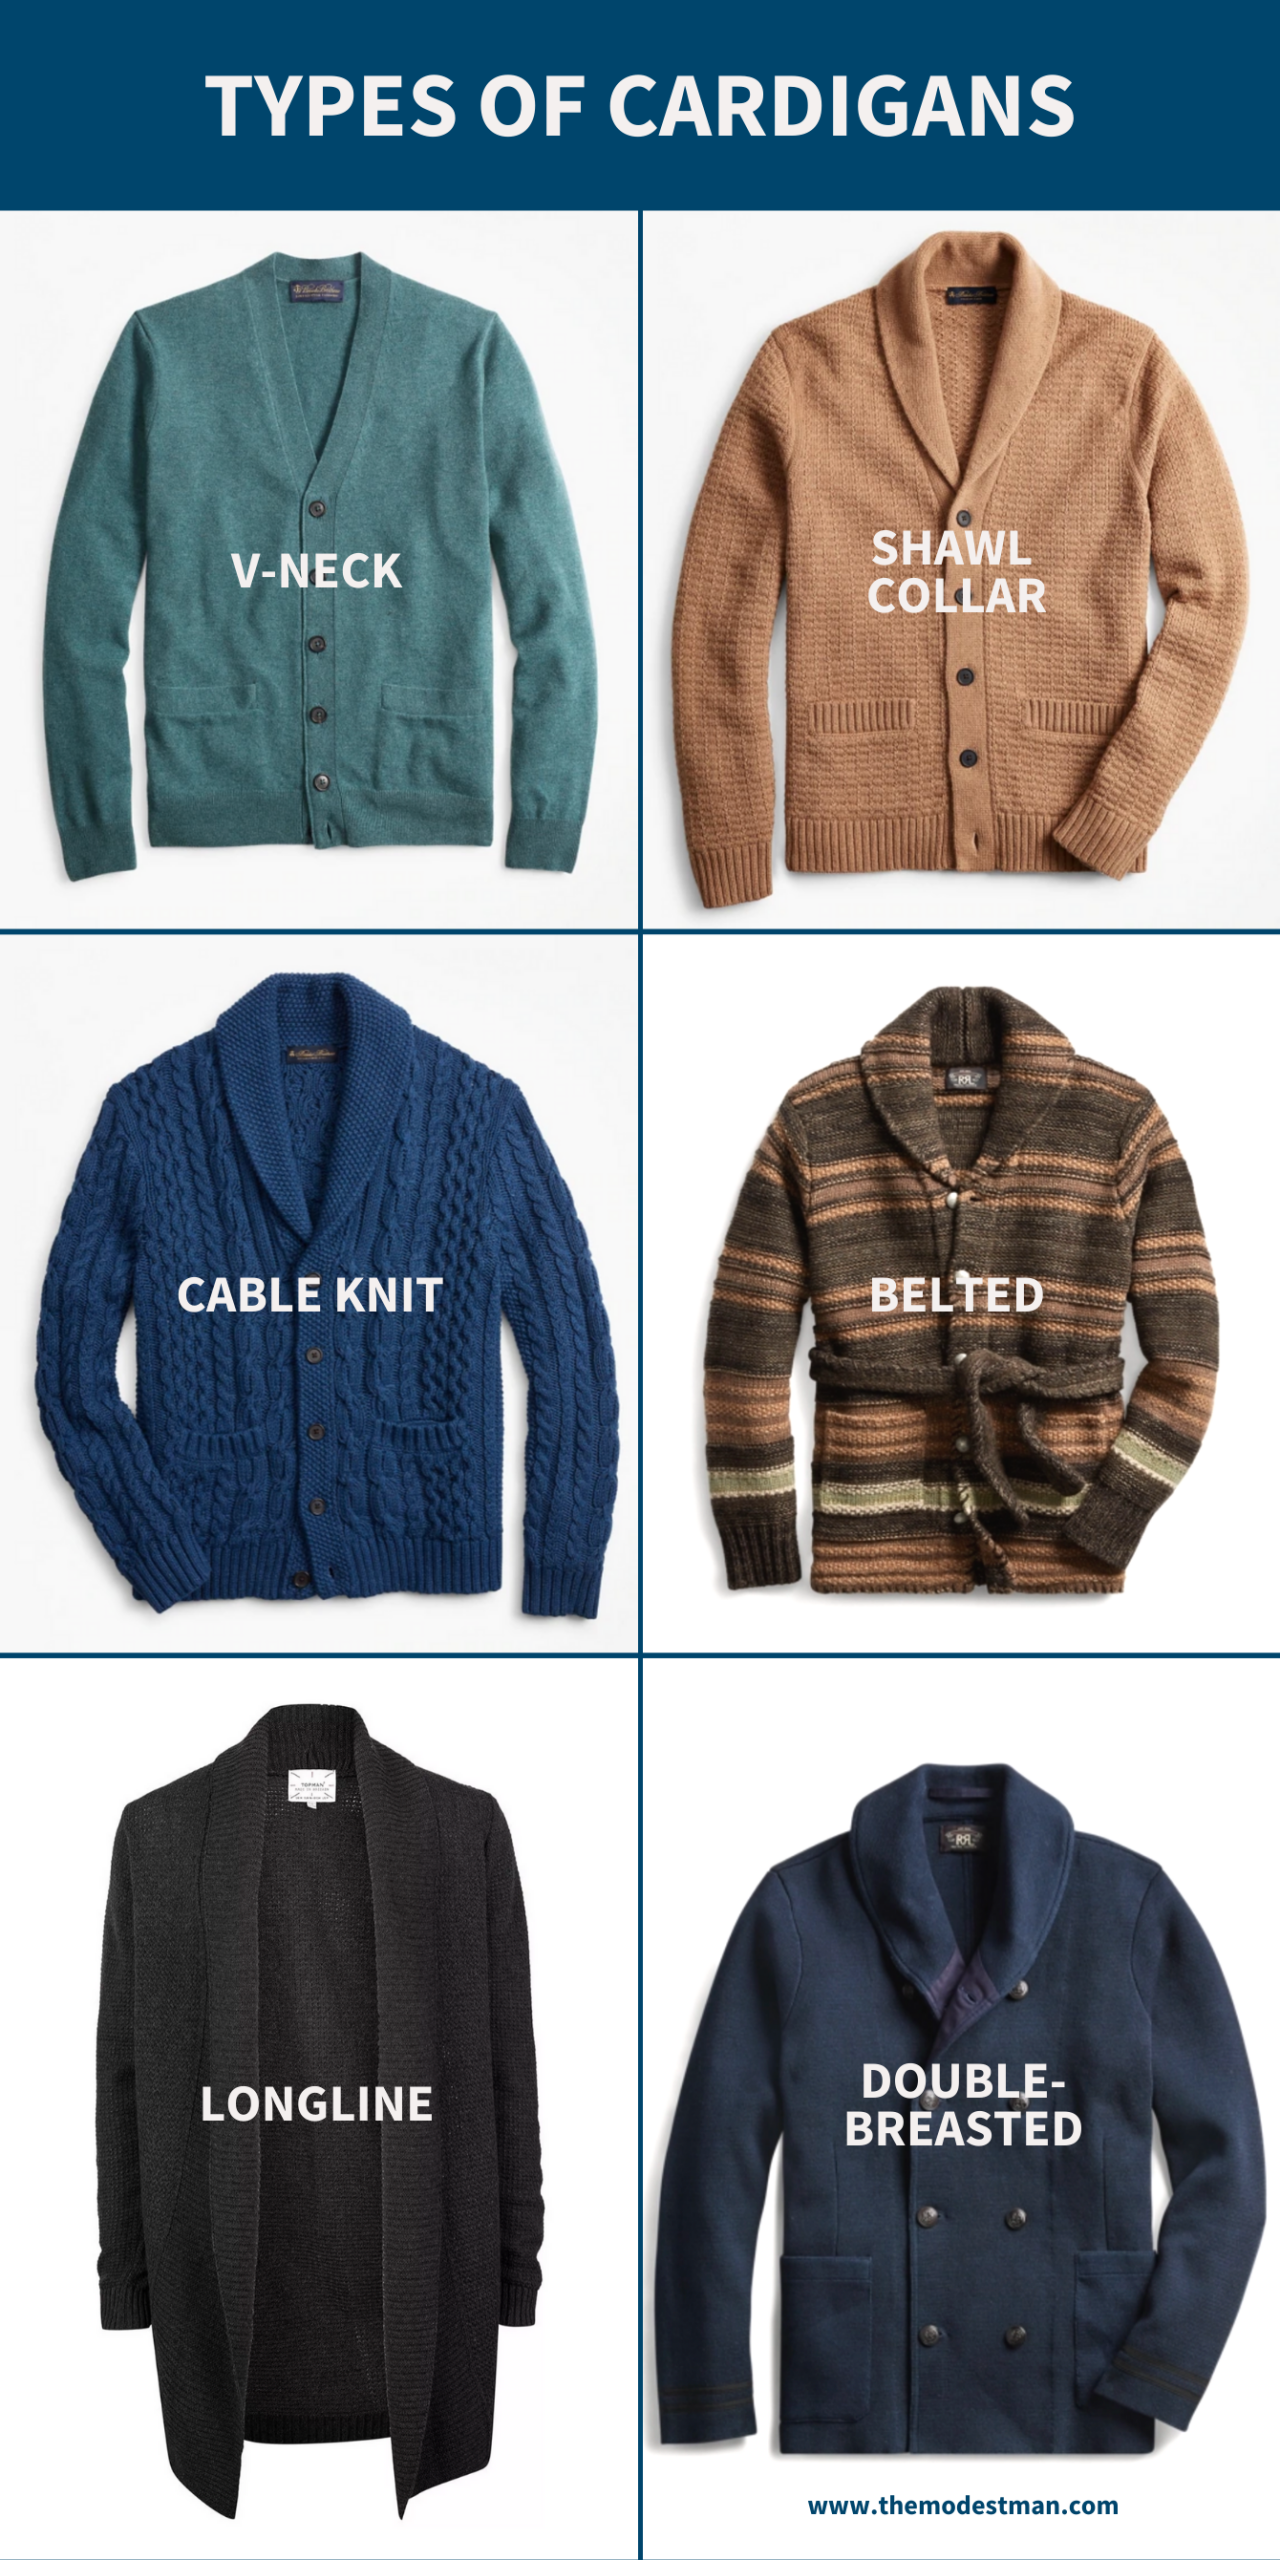 Types of cardigans